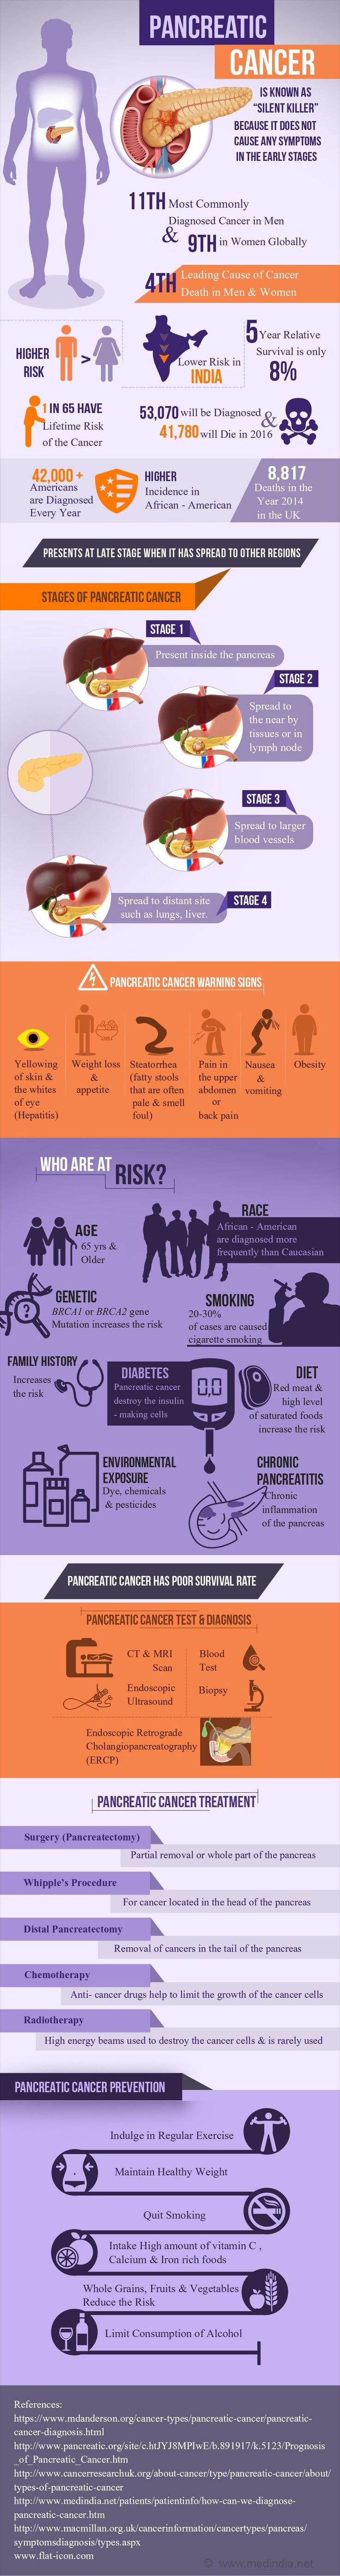 Infographic on Pancreatic Cancer